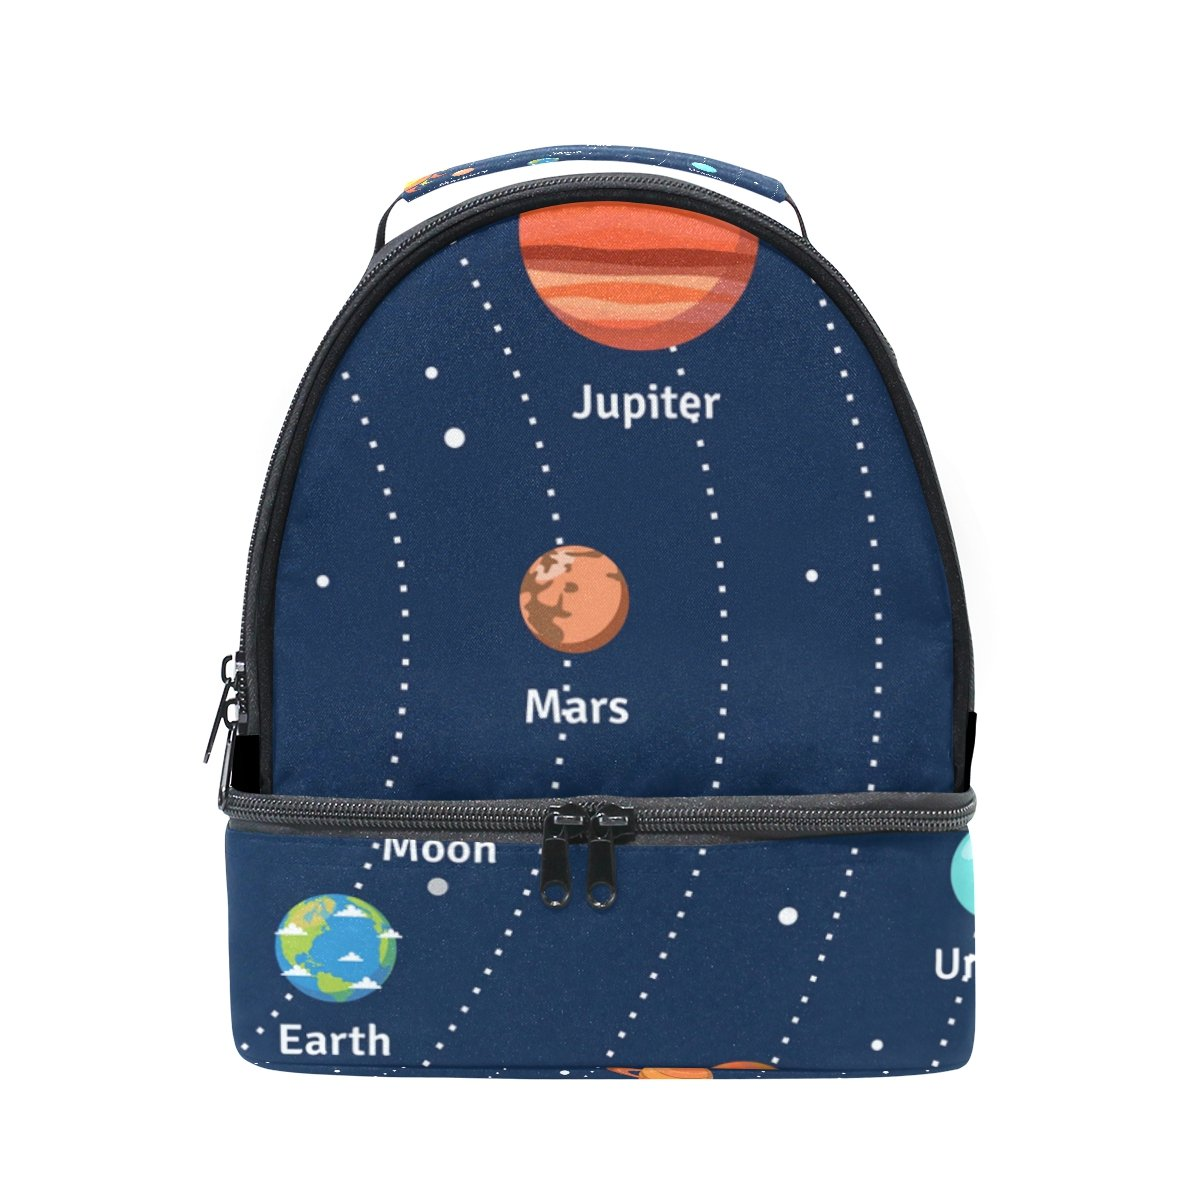 LORVIES Educational Solar System Orbits And Planets Lunch Bag Dual Deck Insulated Lunch Cooler Tote Bag Adjustable Strap Handle for Women Men Teens Boys Girls